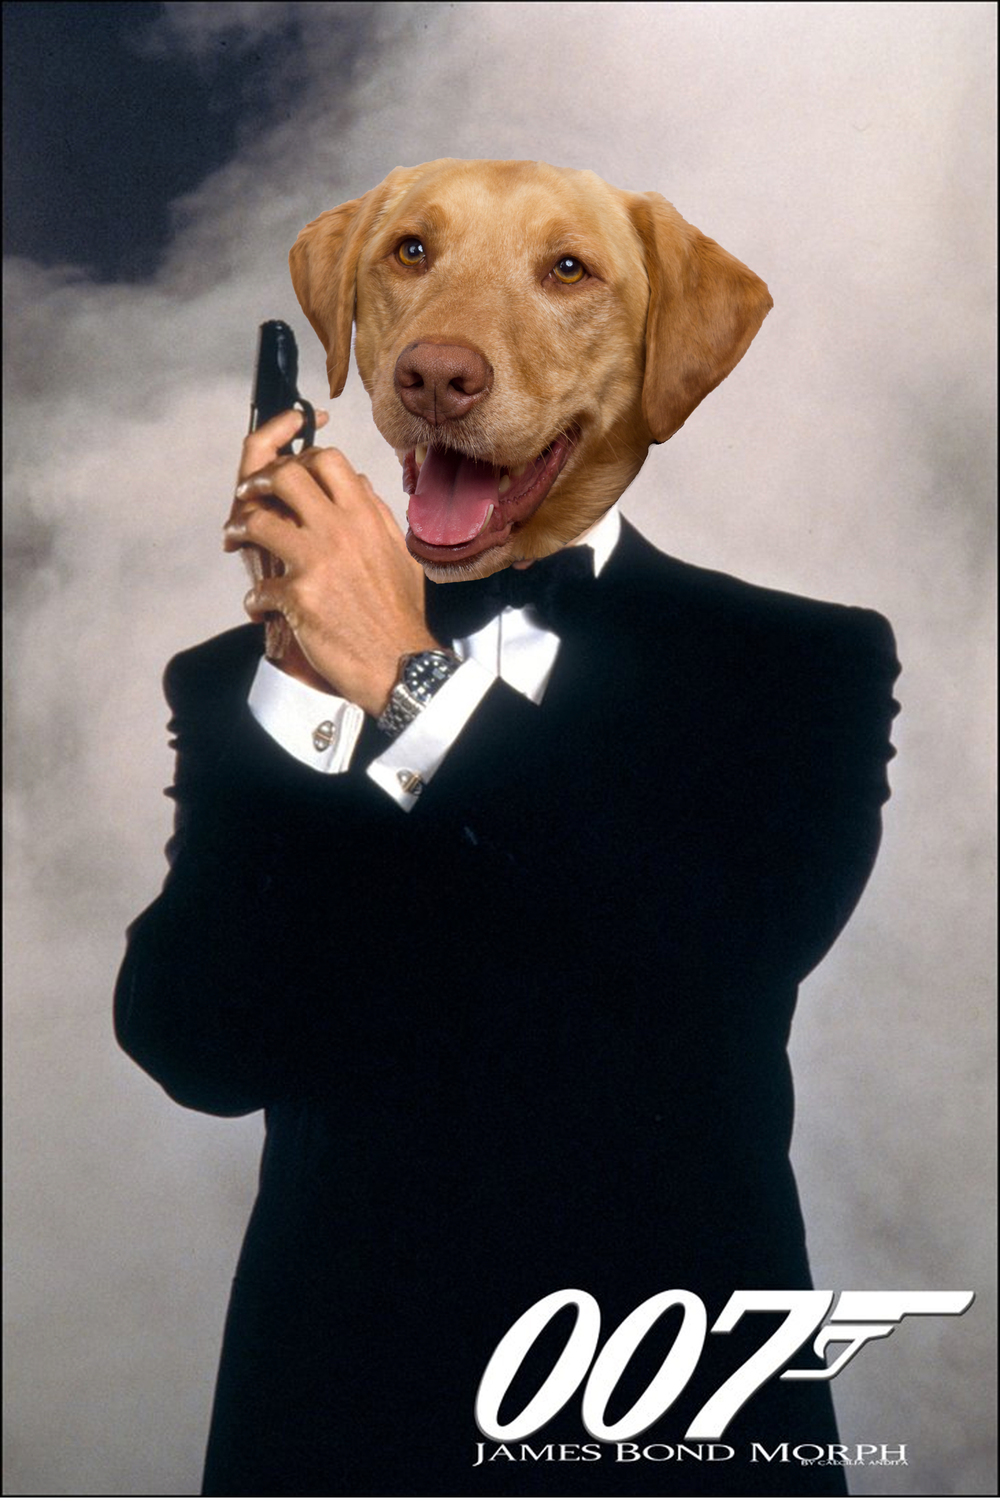 Hurley the Labrador as James Bond